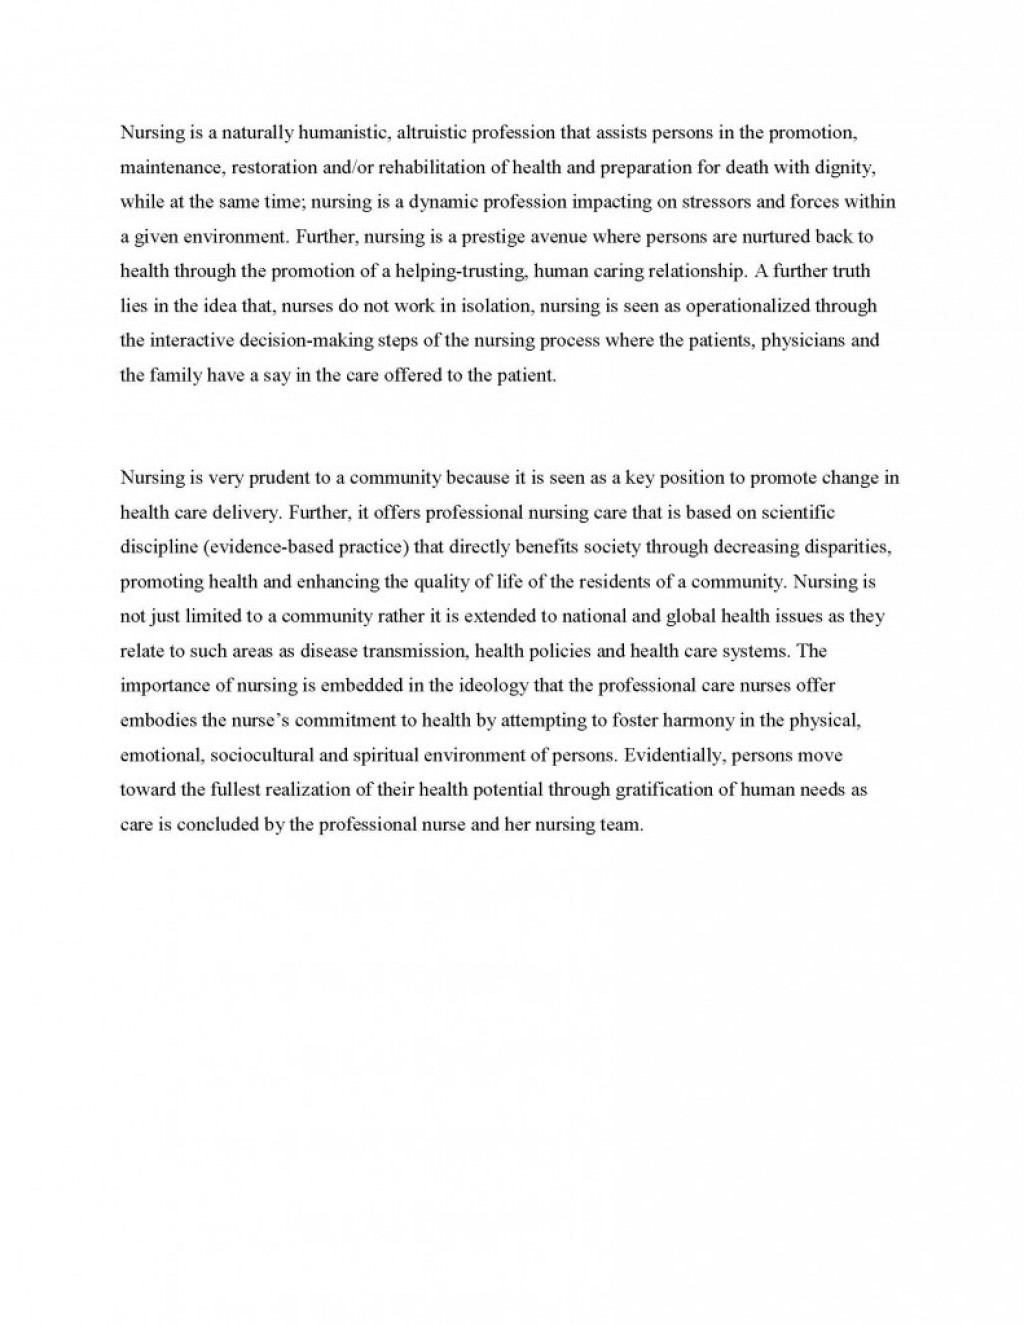 024 Philosophy Essay How To Write Ethics Essays Religious Cambridgeng Good Level Outline Conclusion And Structure Paper For Beginners Introduction Political Example Of Fantastic Nursing College Large